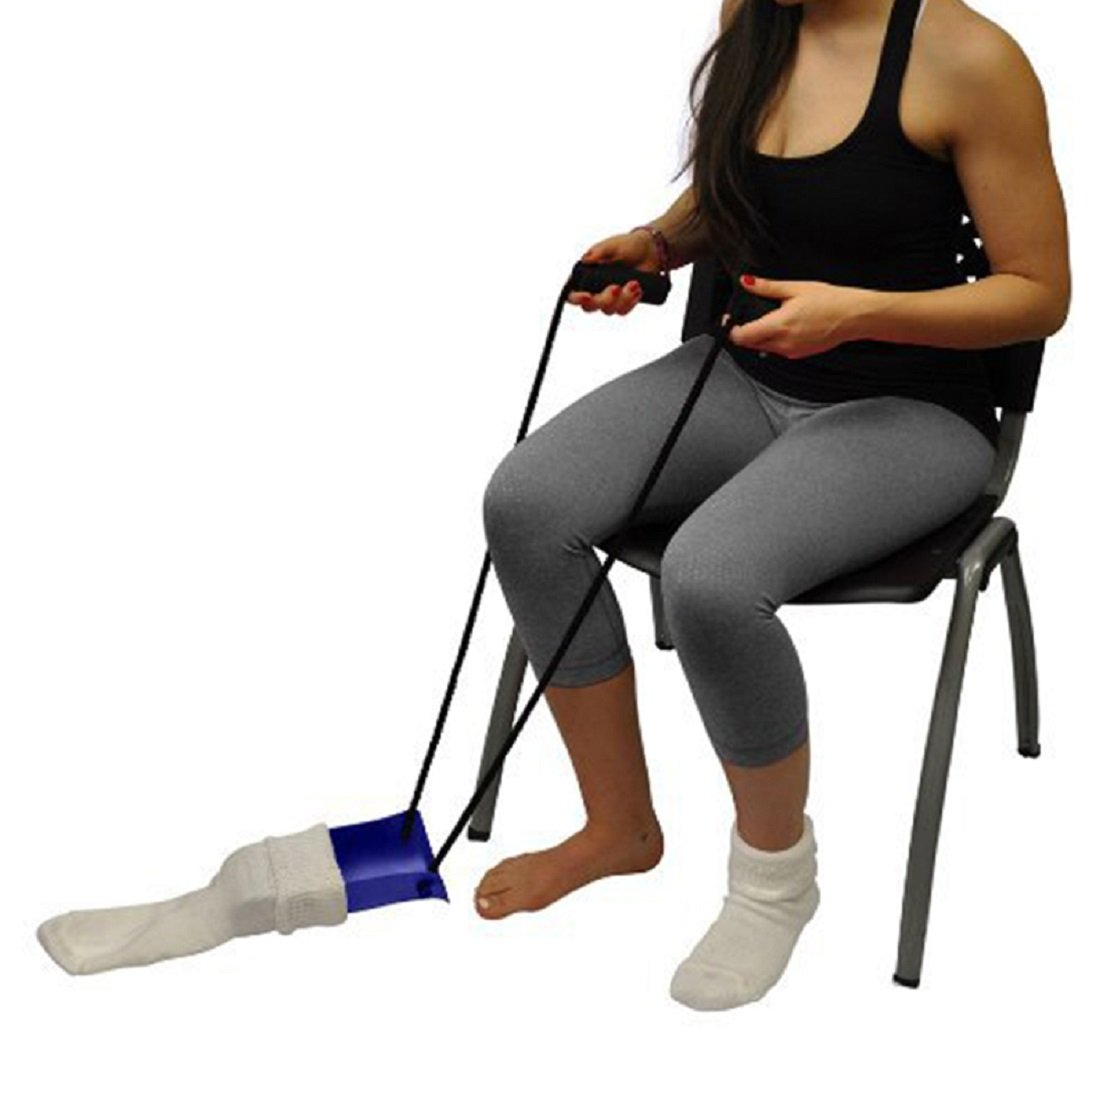 Tinsay Sock Aid with Foam Grip, Sutiable for People with Arthritis, Joint Pain and Limited Range of Motion, Cord Puller Assist Disability Elderly Tool 33 Inches (Blue)